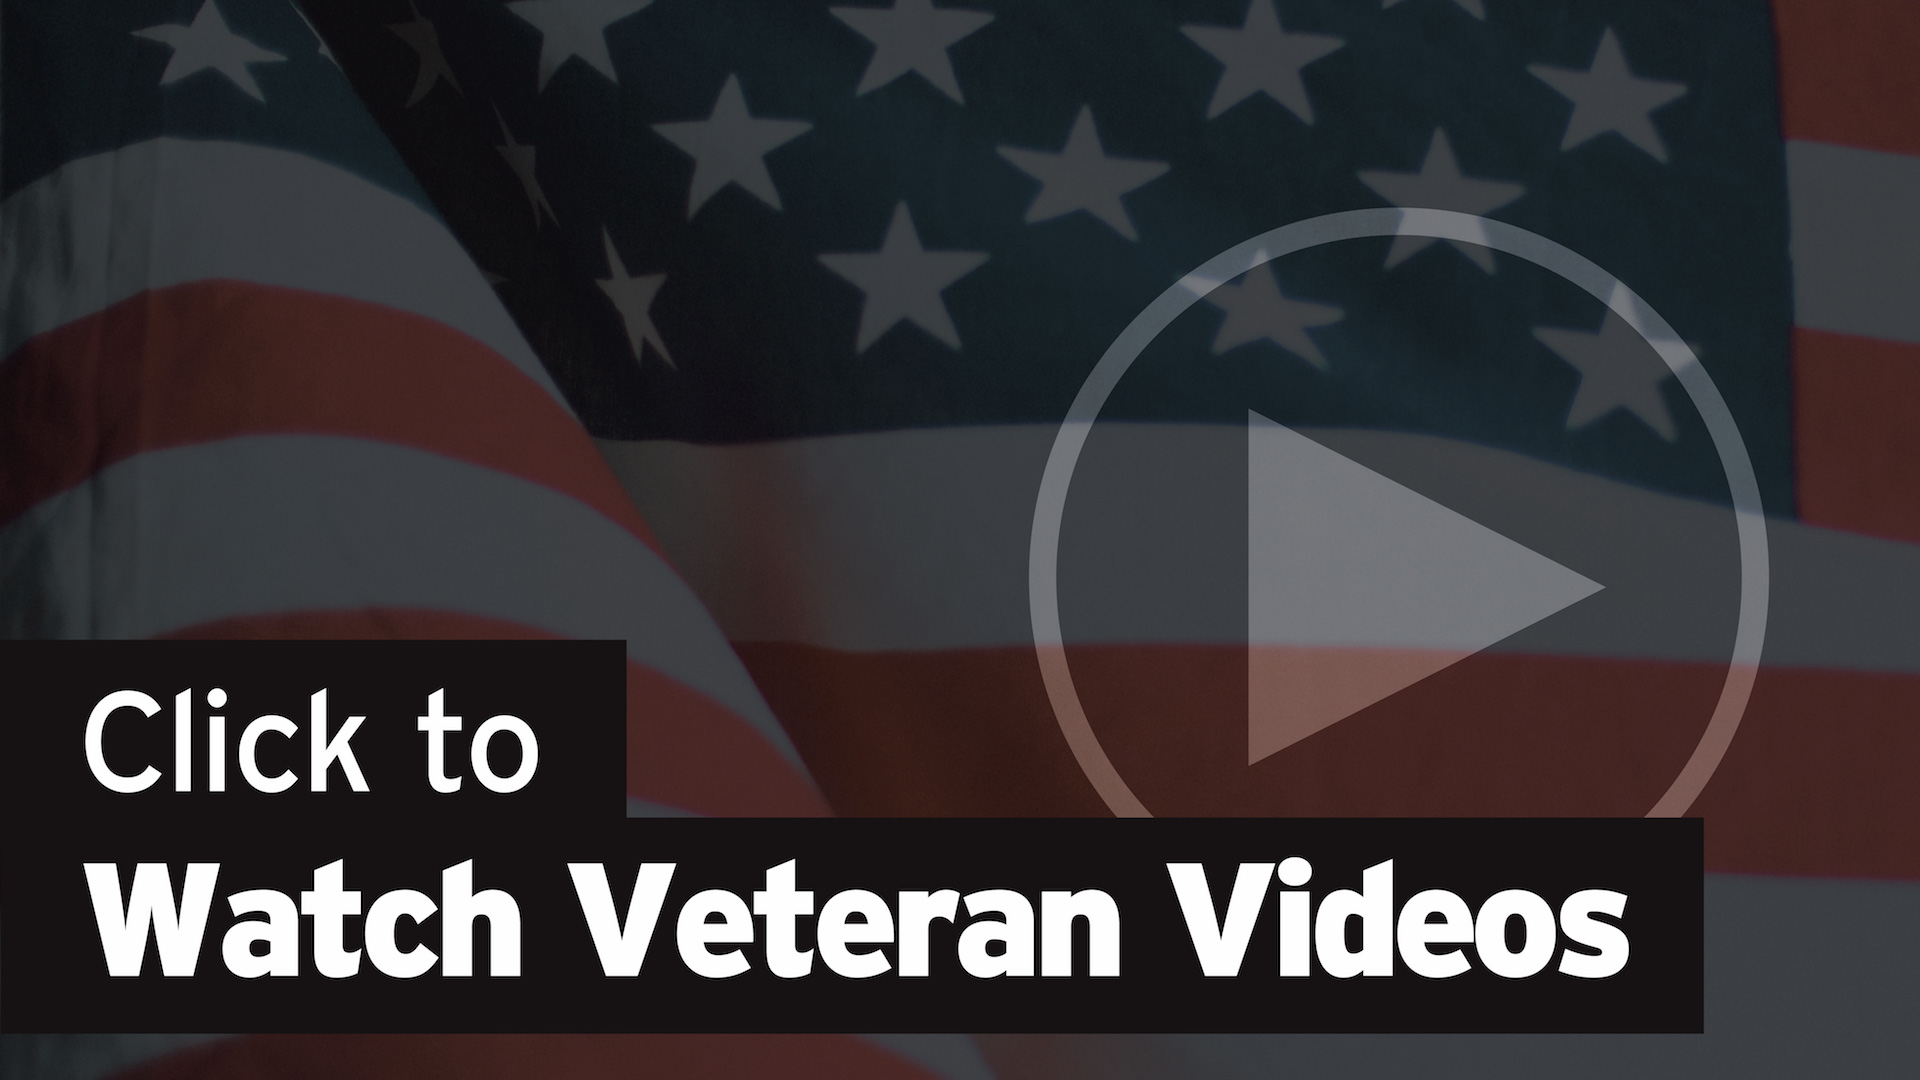 Click Here to Watch Veterans Videos